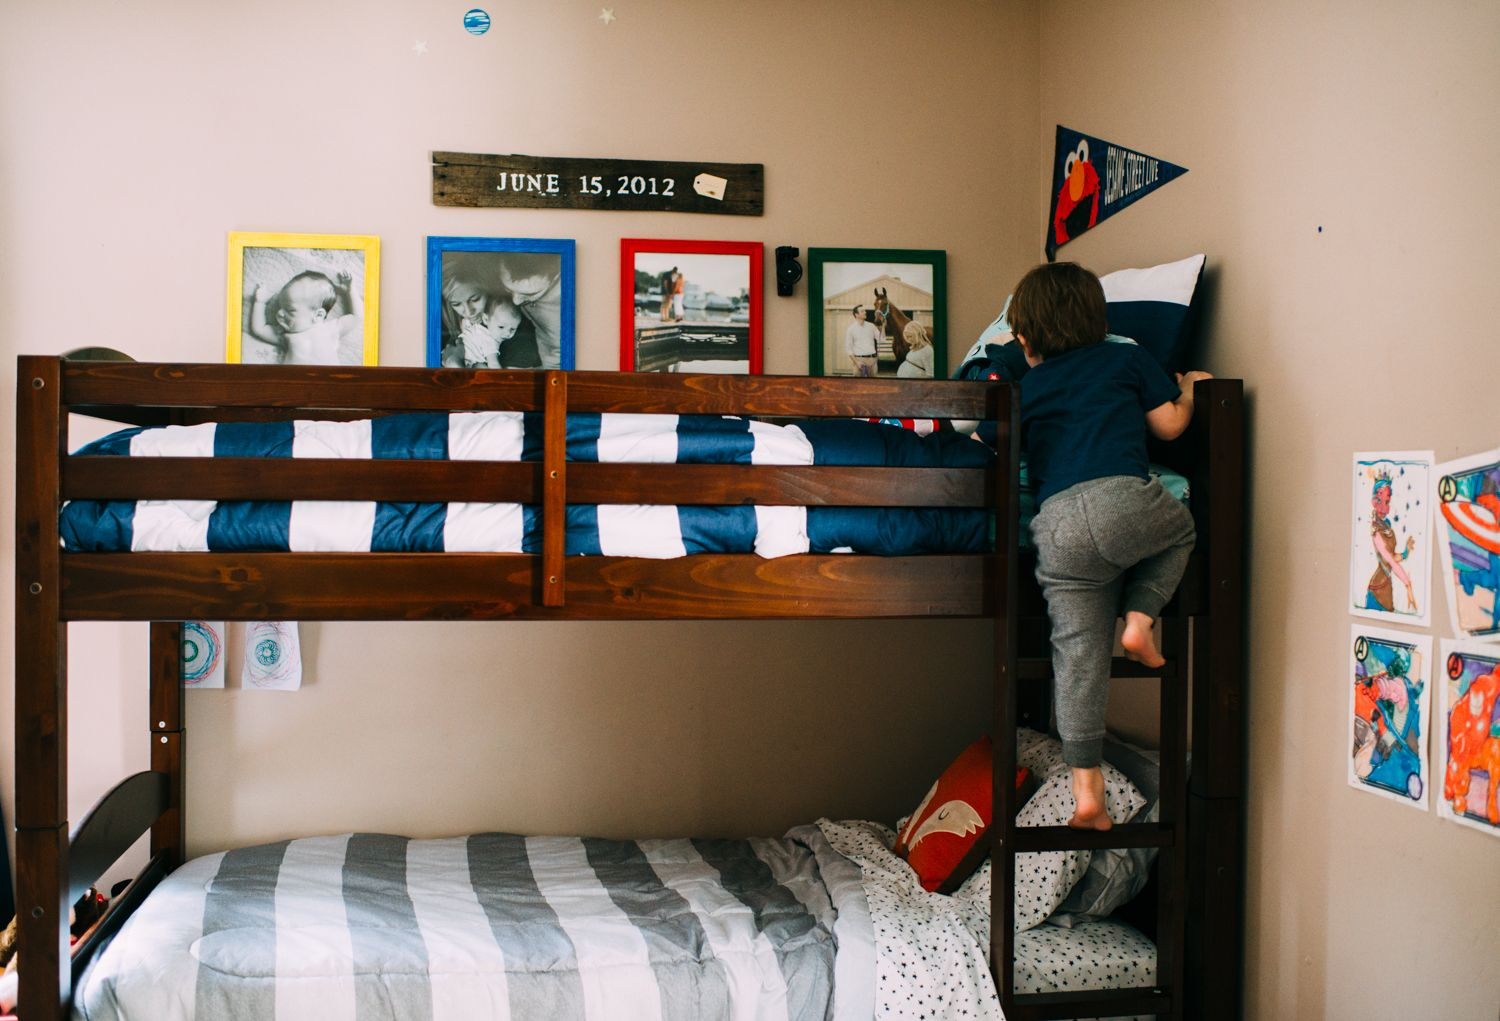 Fun Bunk Bed For The Kids Http Ebay To 2ifvv3t Bunk Beds For Sale Cool Bunk Beds Wood Bunk Beds